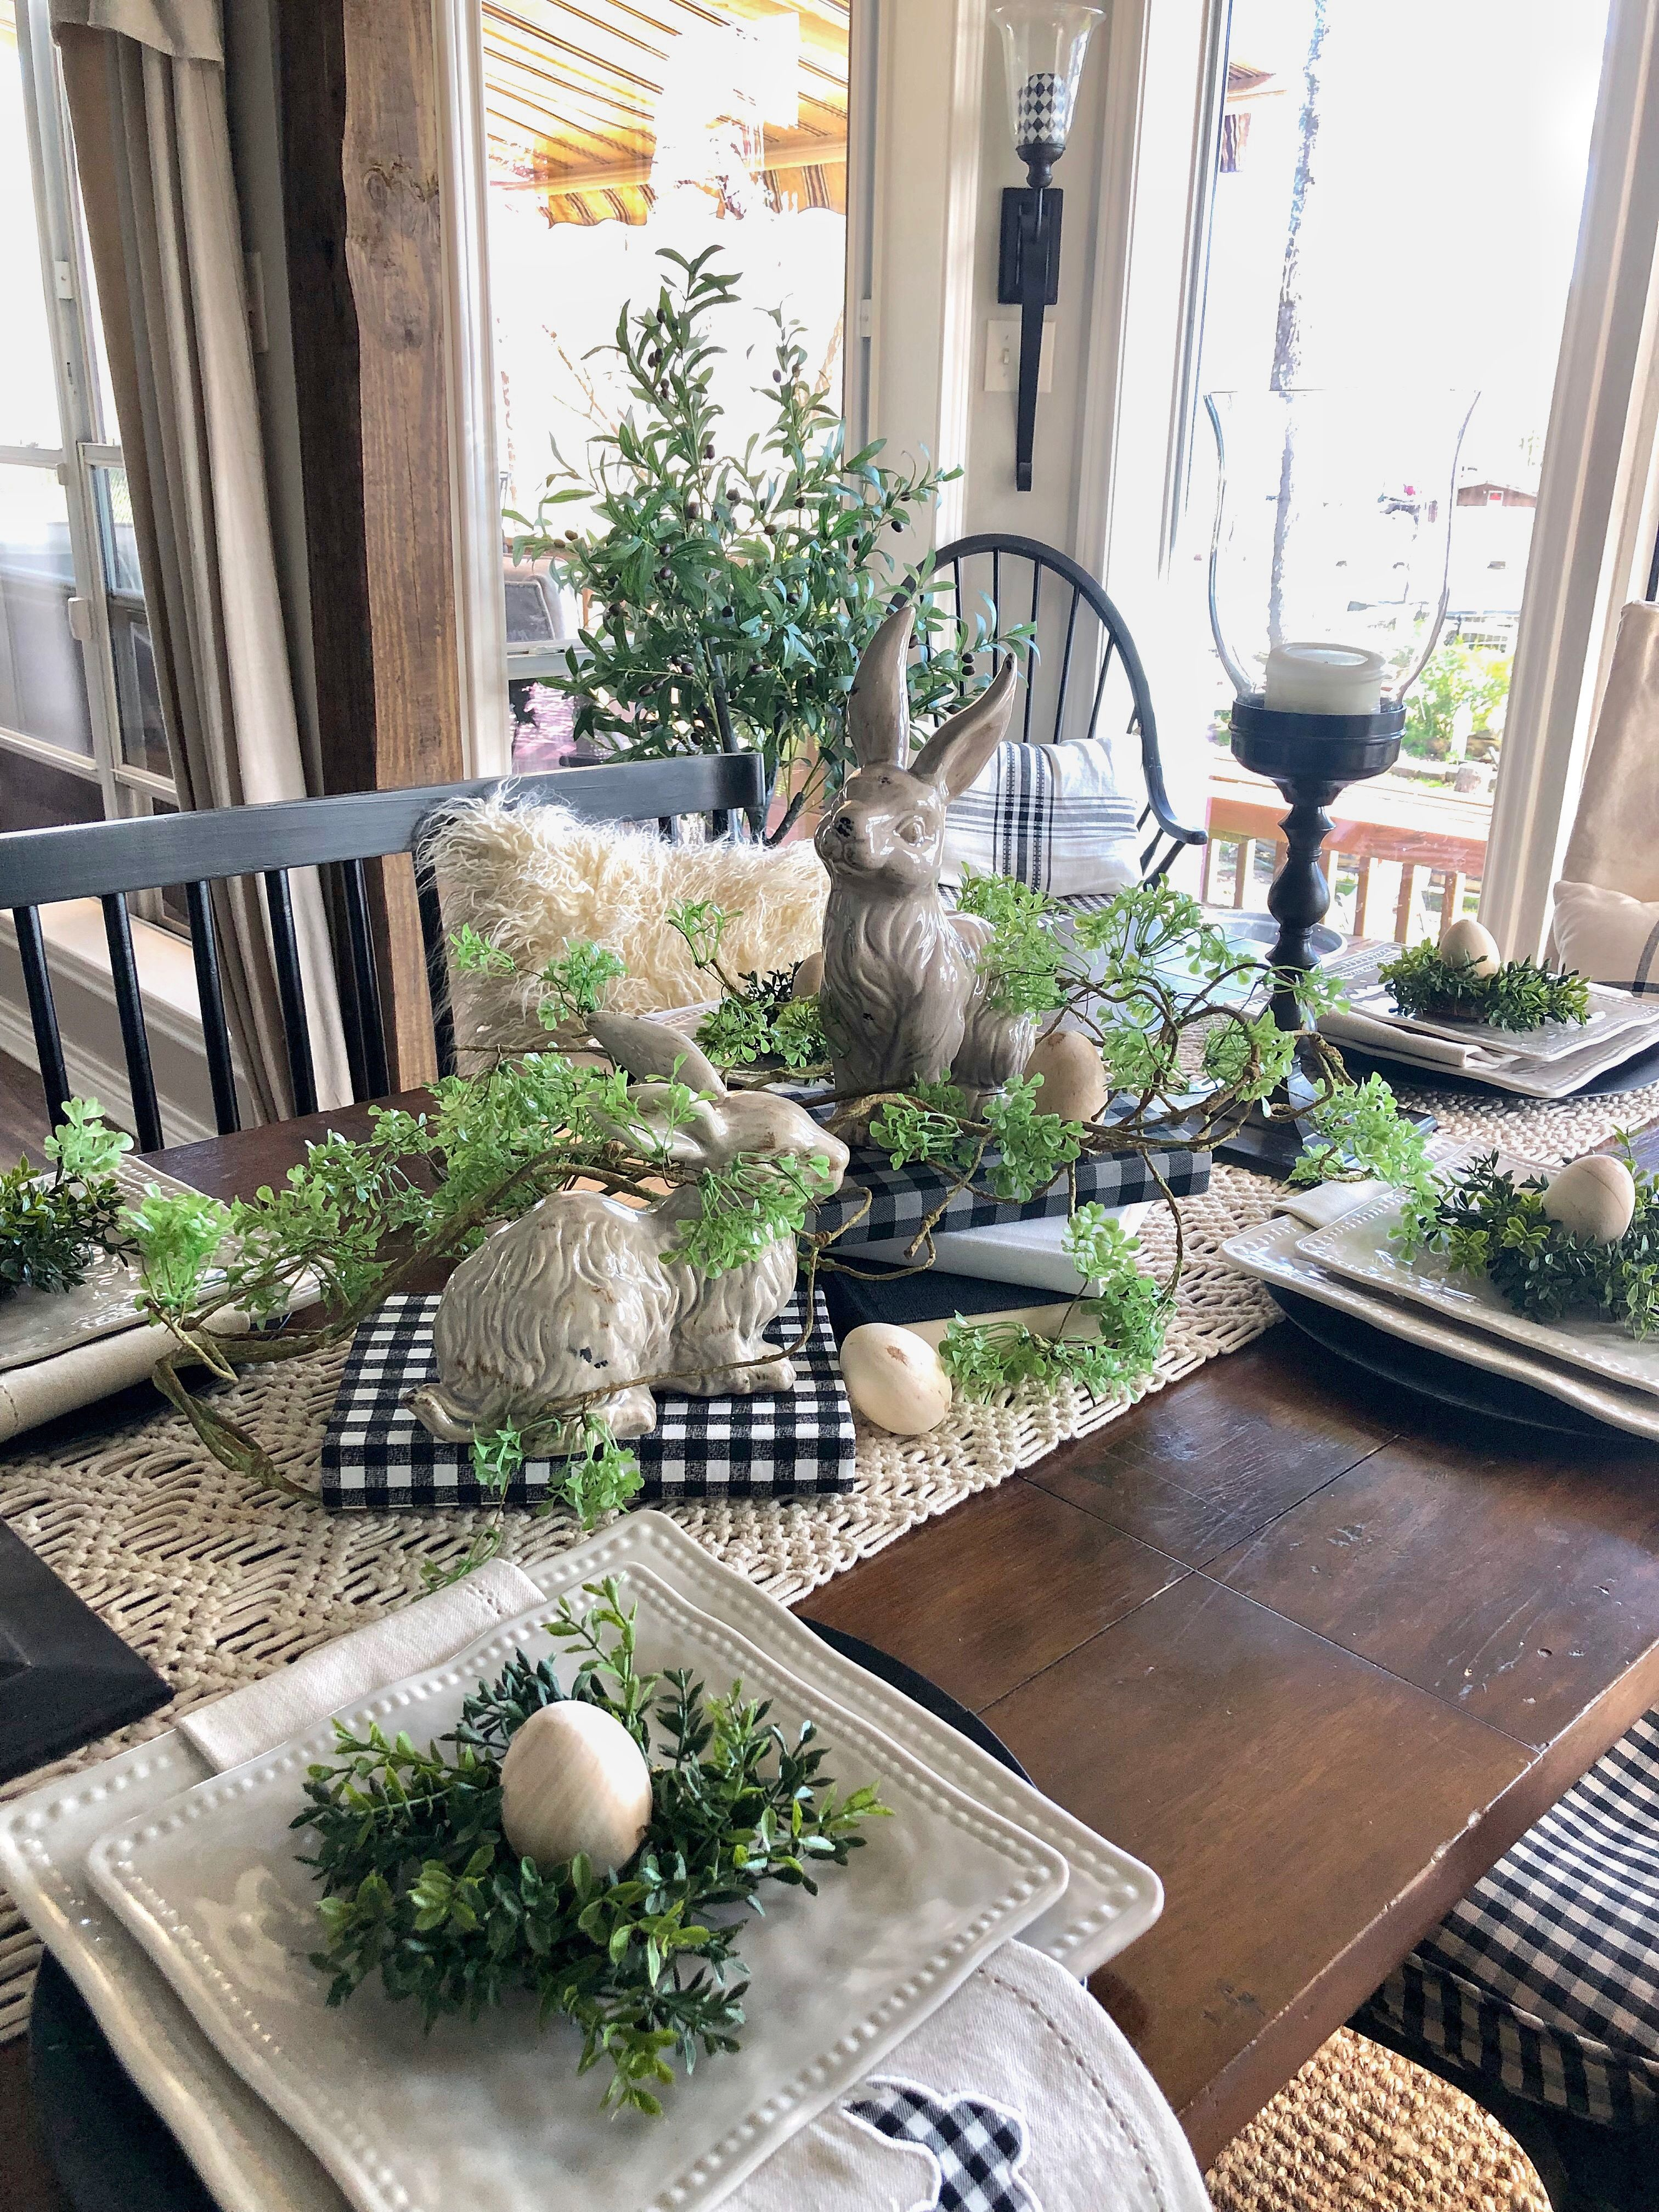 In This Post I M Sharing 3 Easter Table Theme Ideas For Your Easter Table Easter Decor Ideas Spring Table Decor Easter Table Decorations Spring Easter Decor